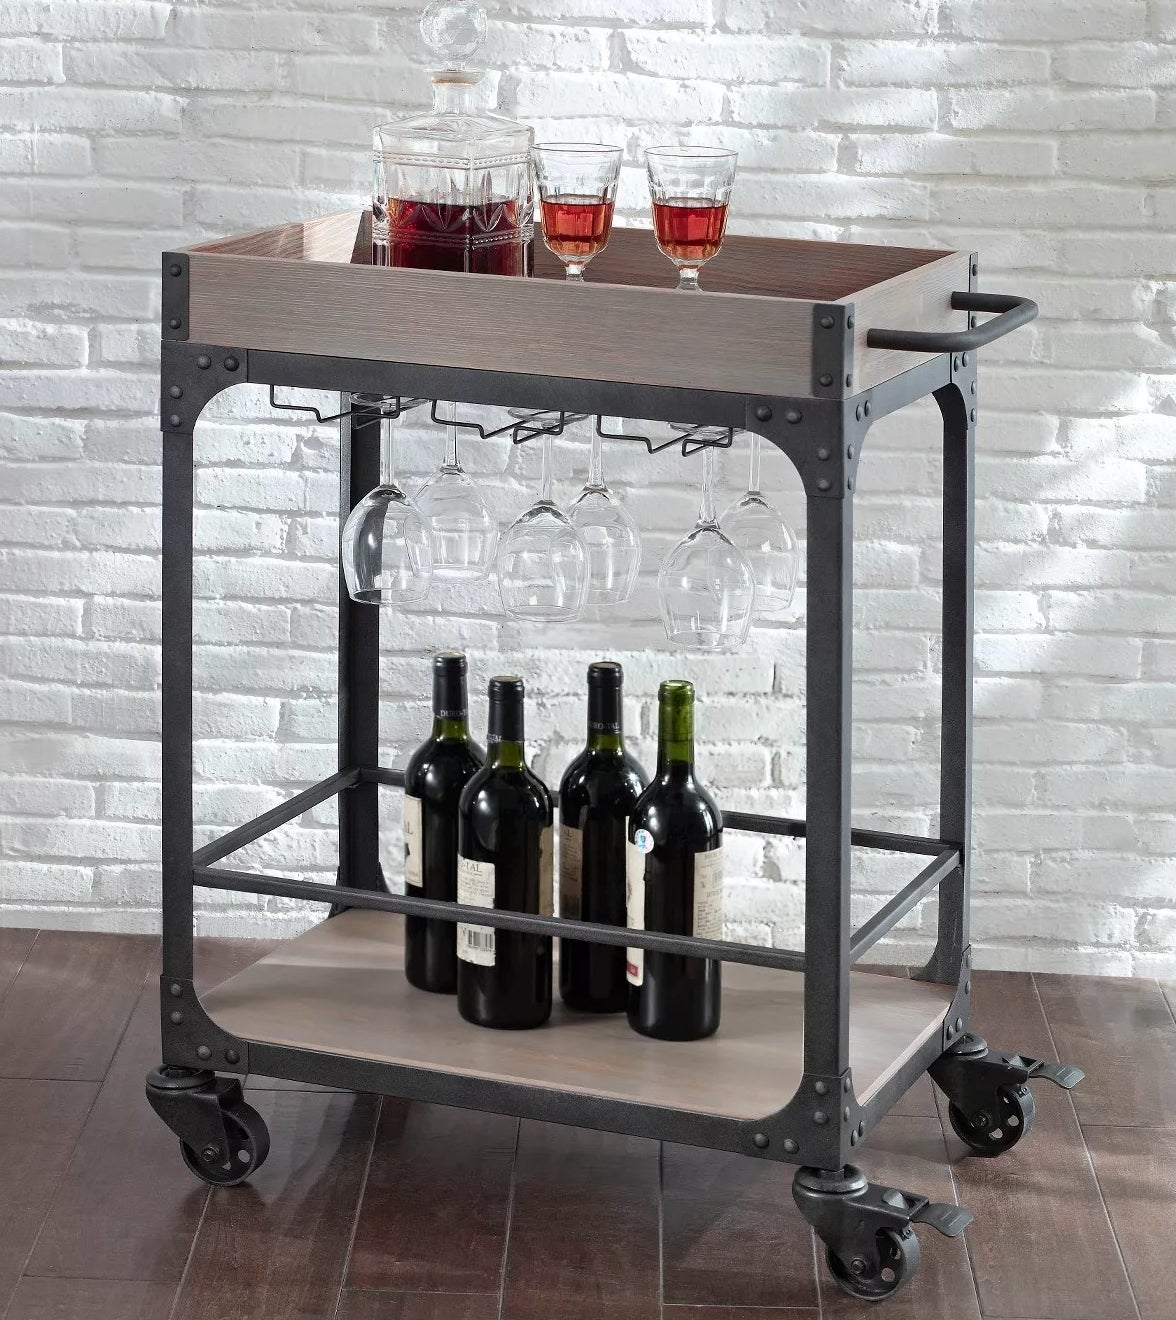 The bar cart on wheels with two shelves and hidden wine glass storage